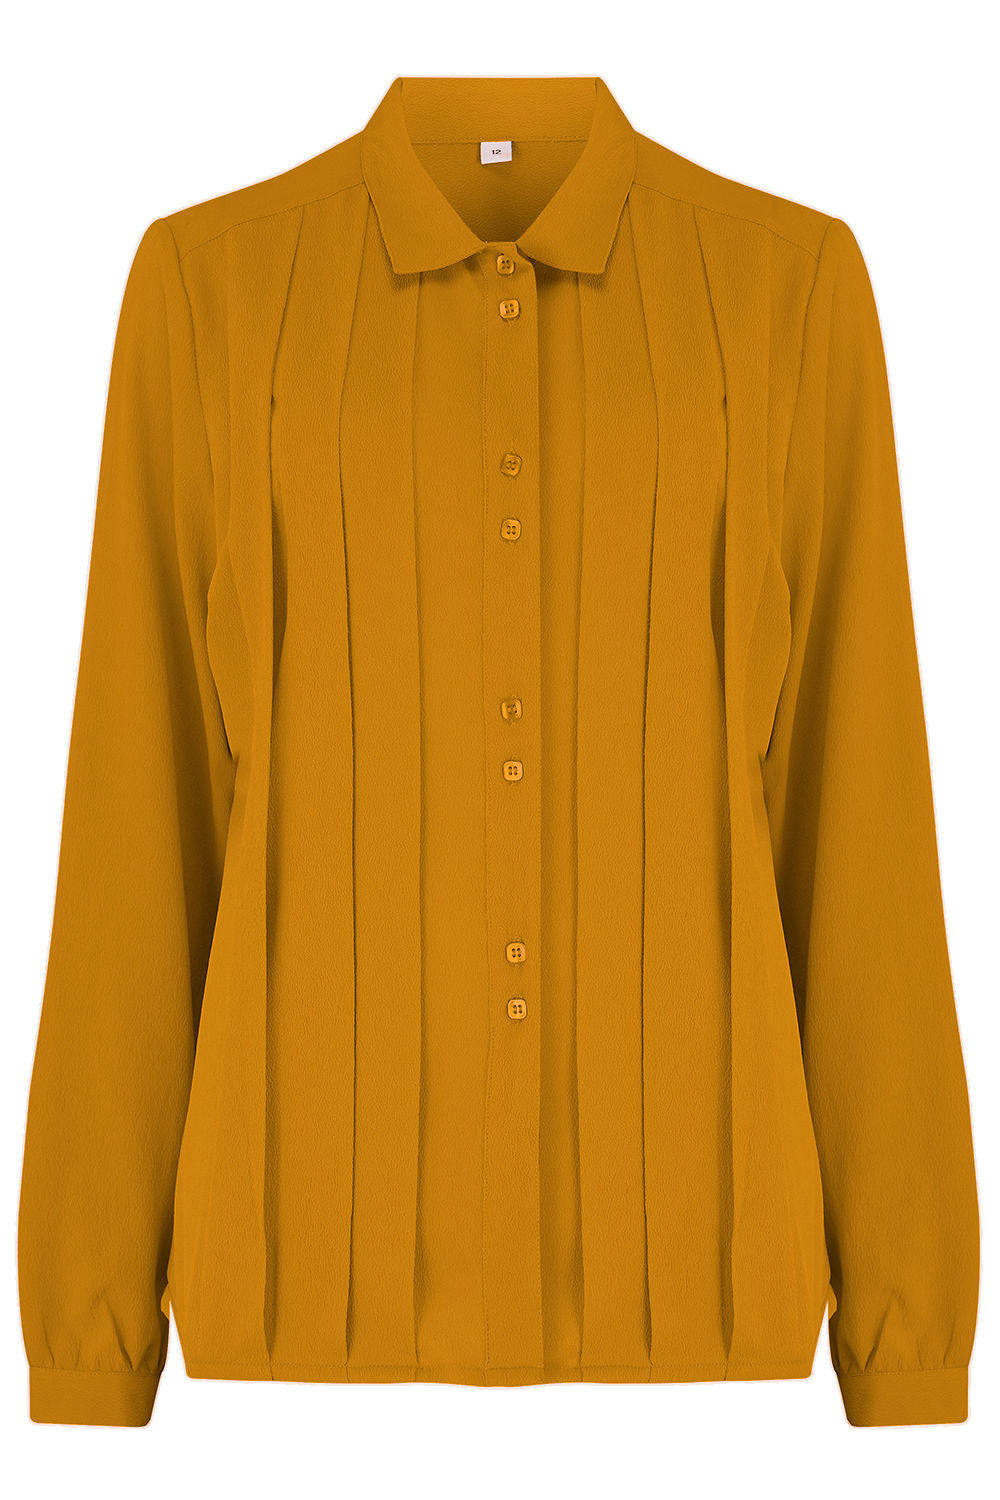 "Rock n Romance The ""Lydia"" Long Sleeve, Pleated Front Blouse in Mustard, True Vintage Style - RocknRomance Clothing"